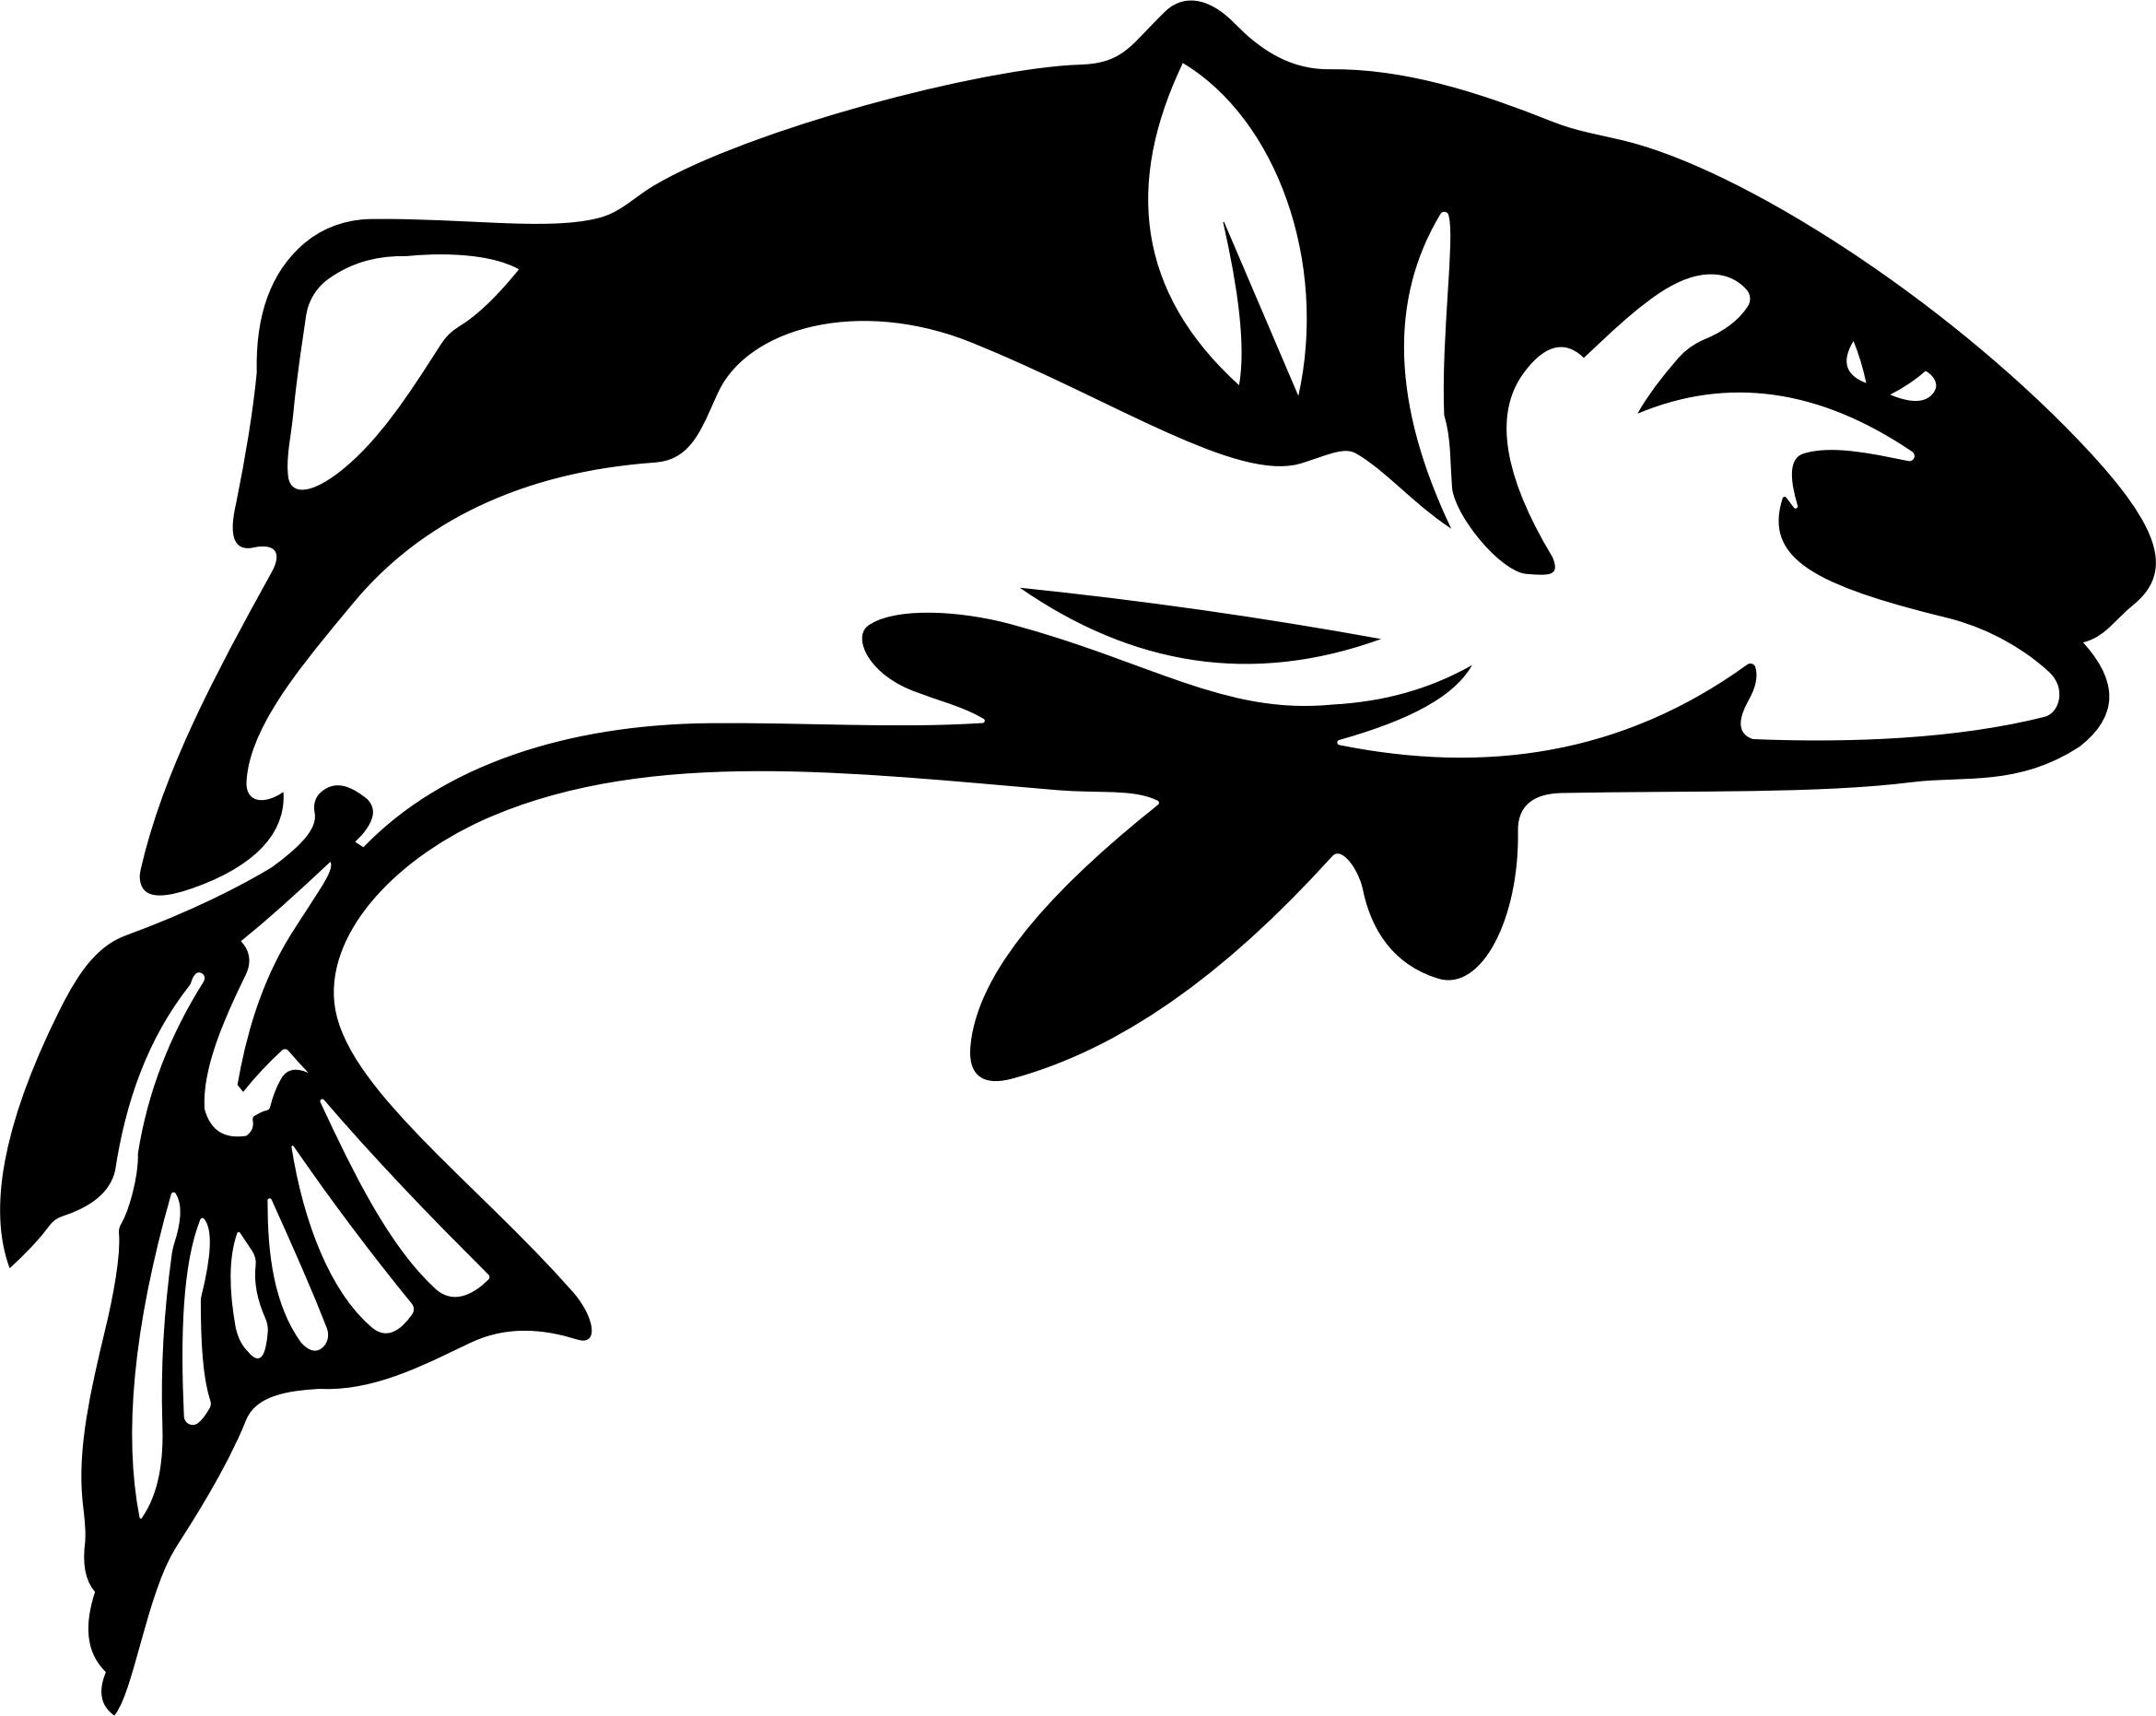 Fish Bowl Silhouette At Getdrawings Com Free For Personal Use Fish